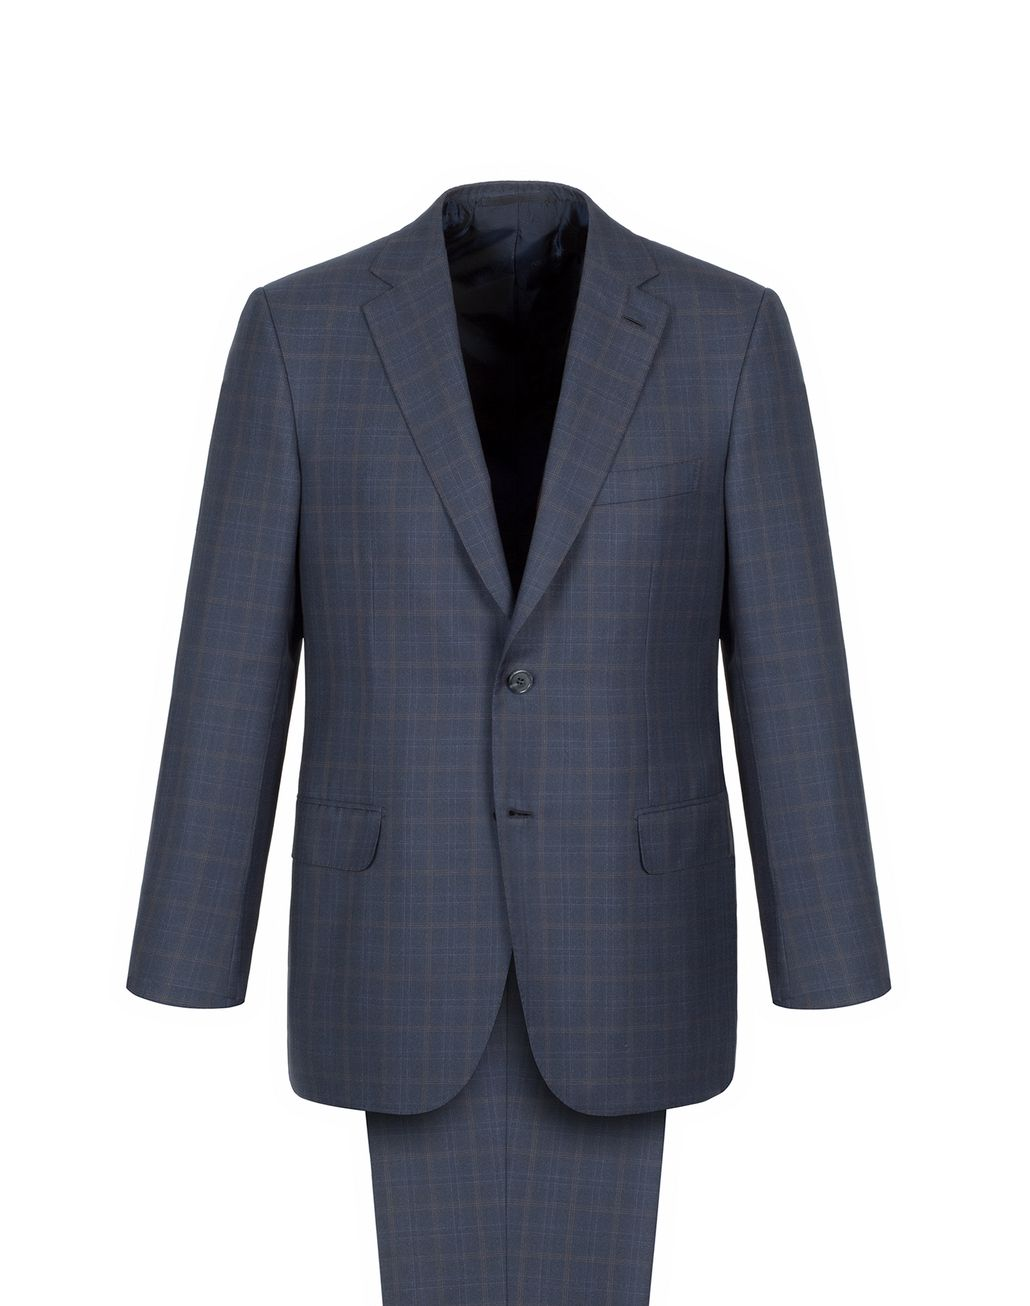 BRIONI Navy Blue Subtle Check Brunico Suit Suits & Jackets Man f